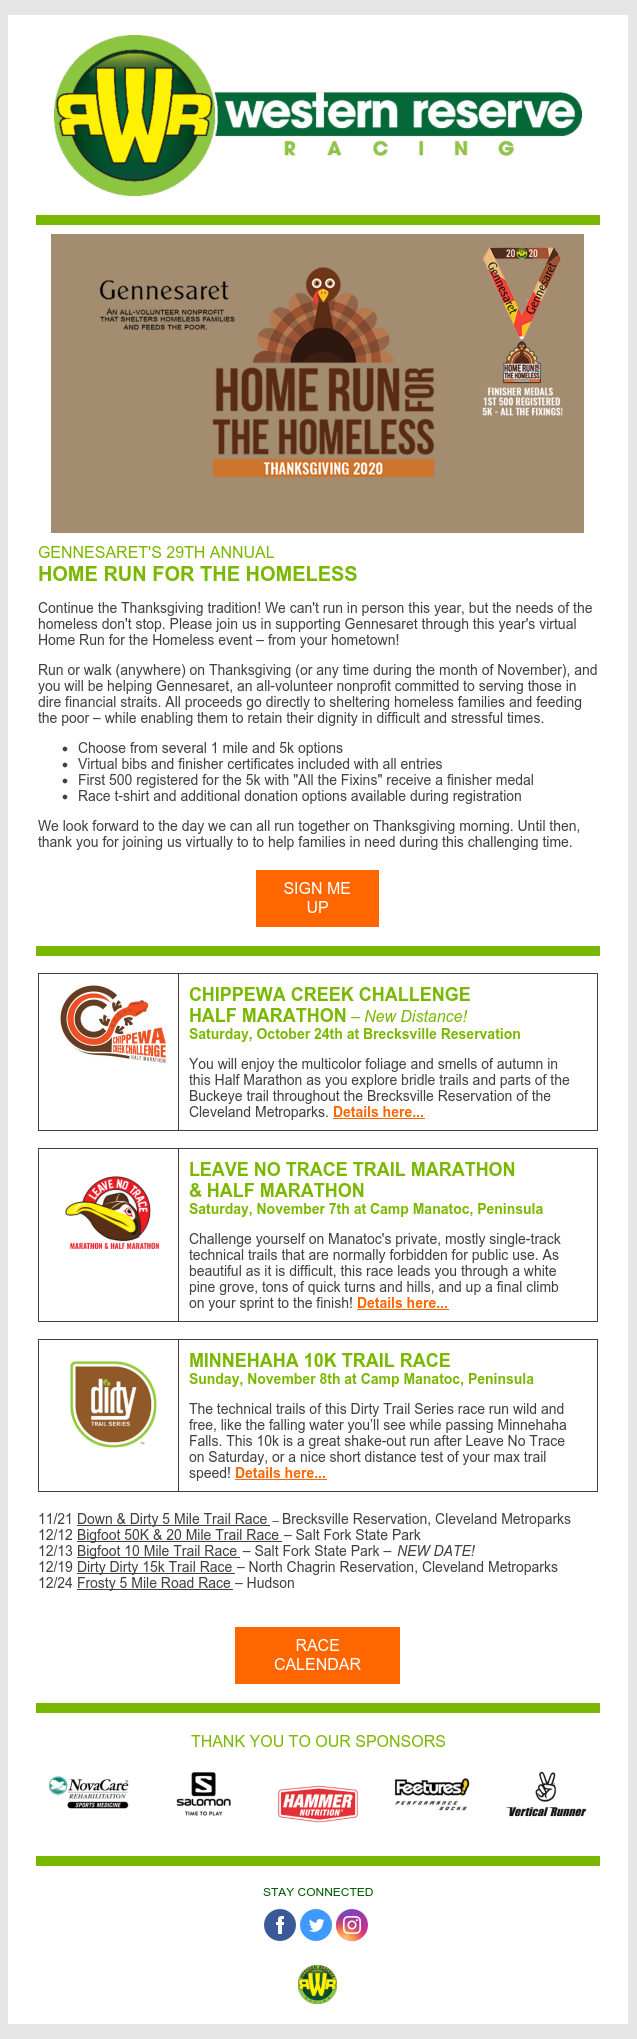 102120 Race Update Email